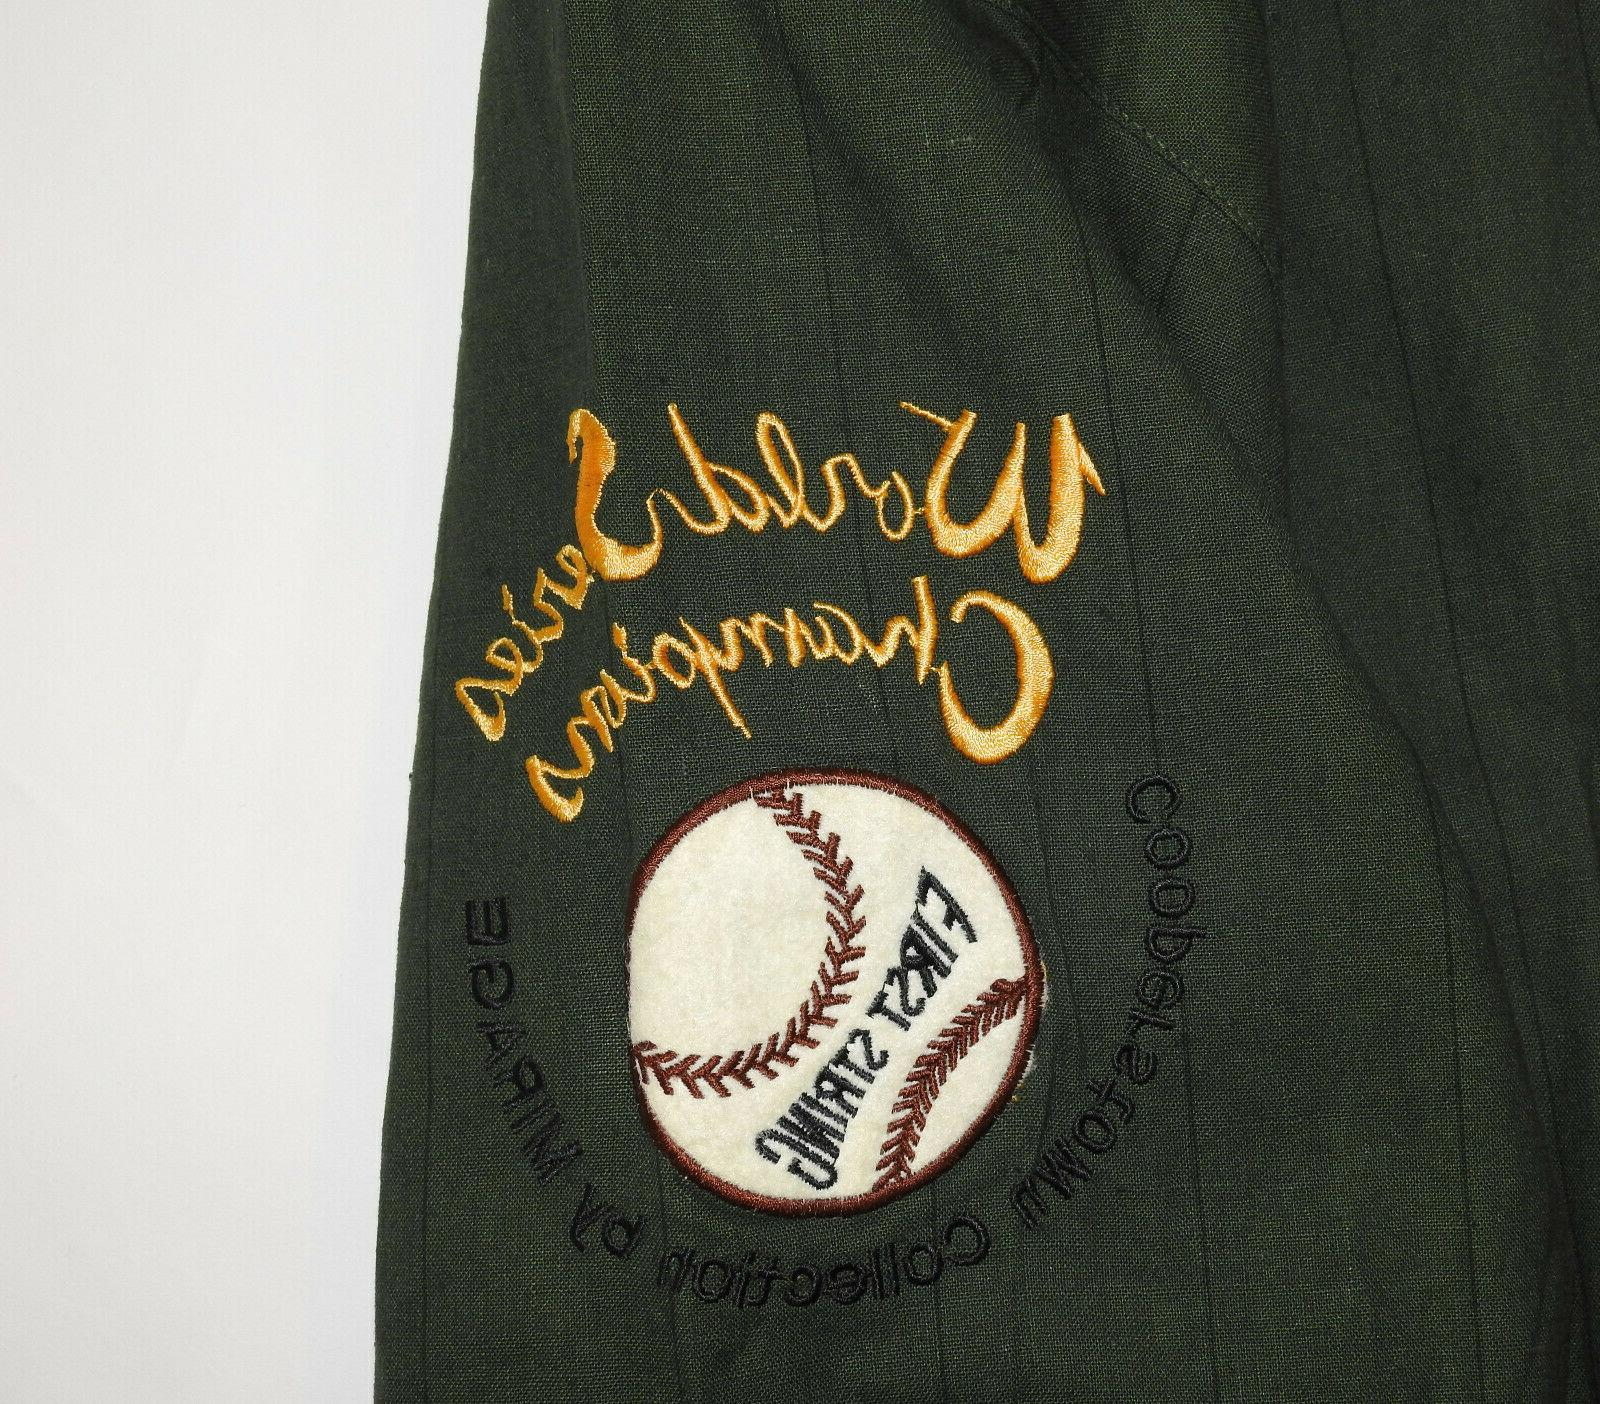 Oakland As Vintage 72', 73',74' Commemorative Jacket